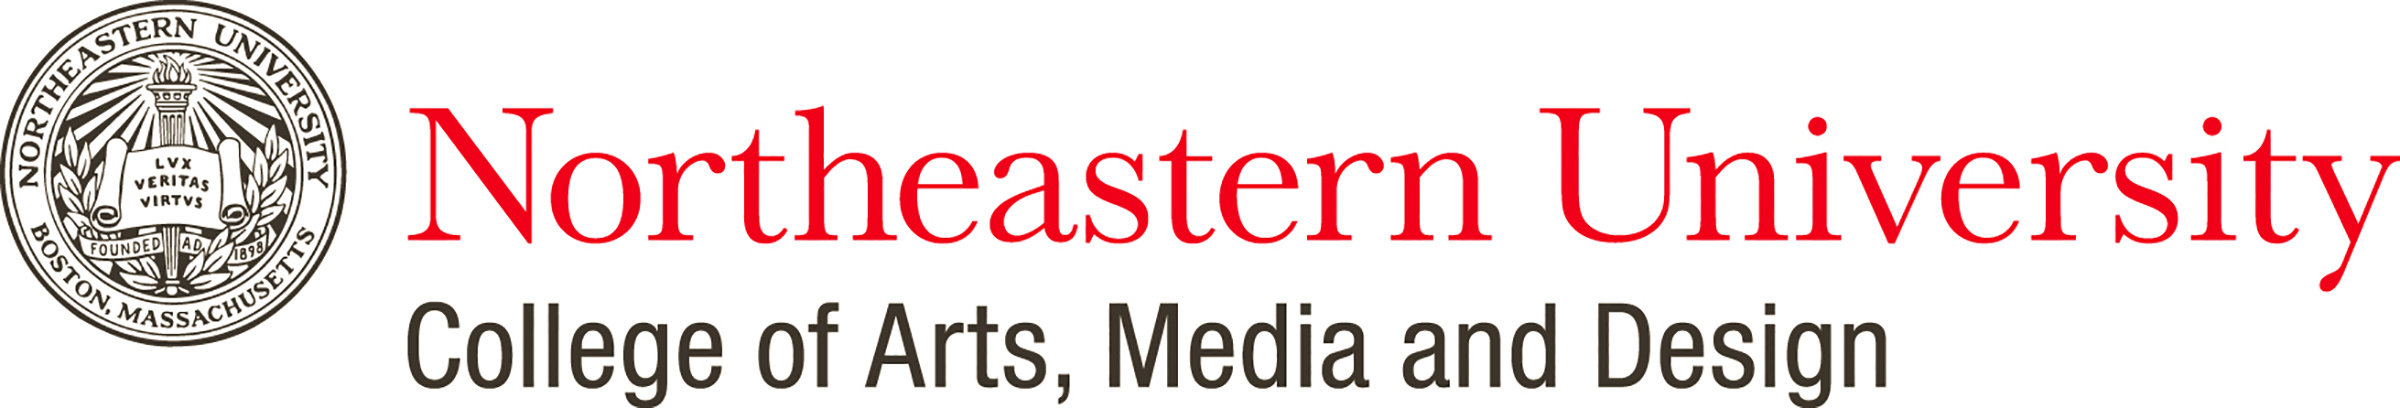 College Northeastern University - College of Arts, Media and Design (CAMD)